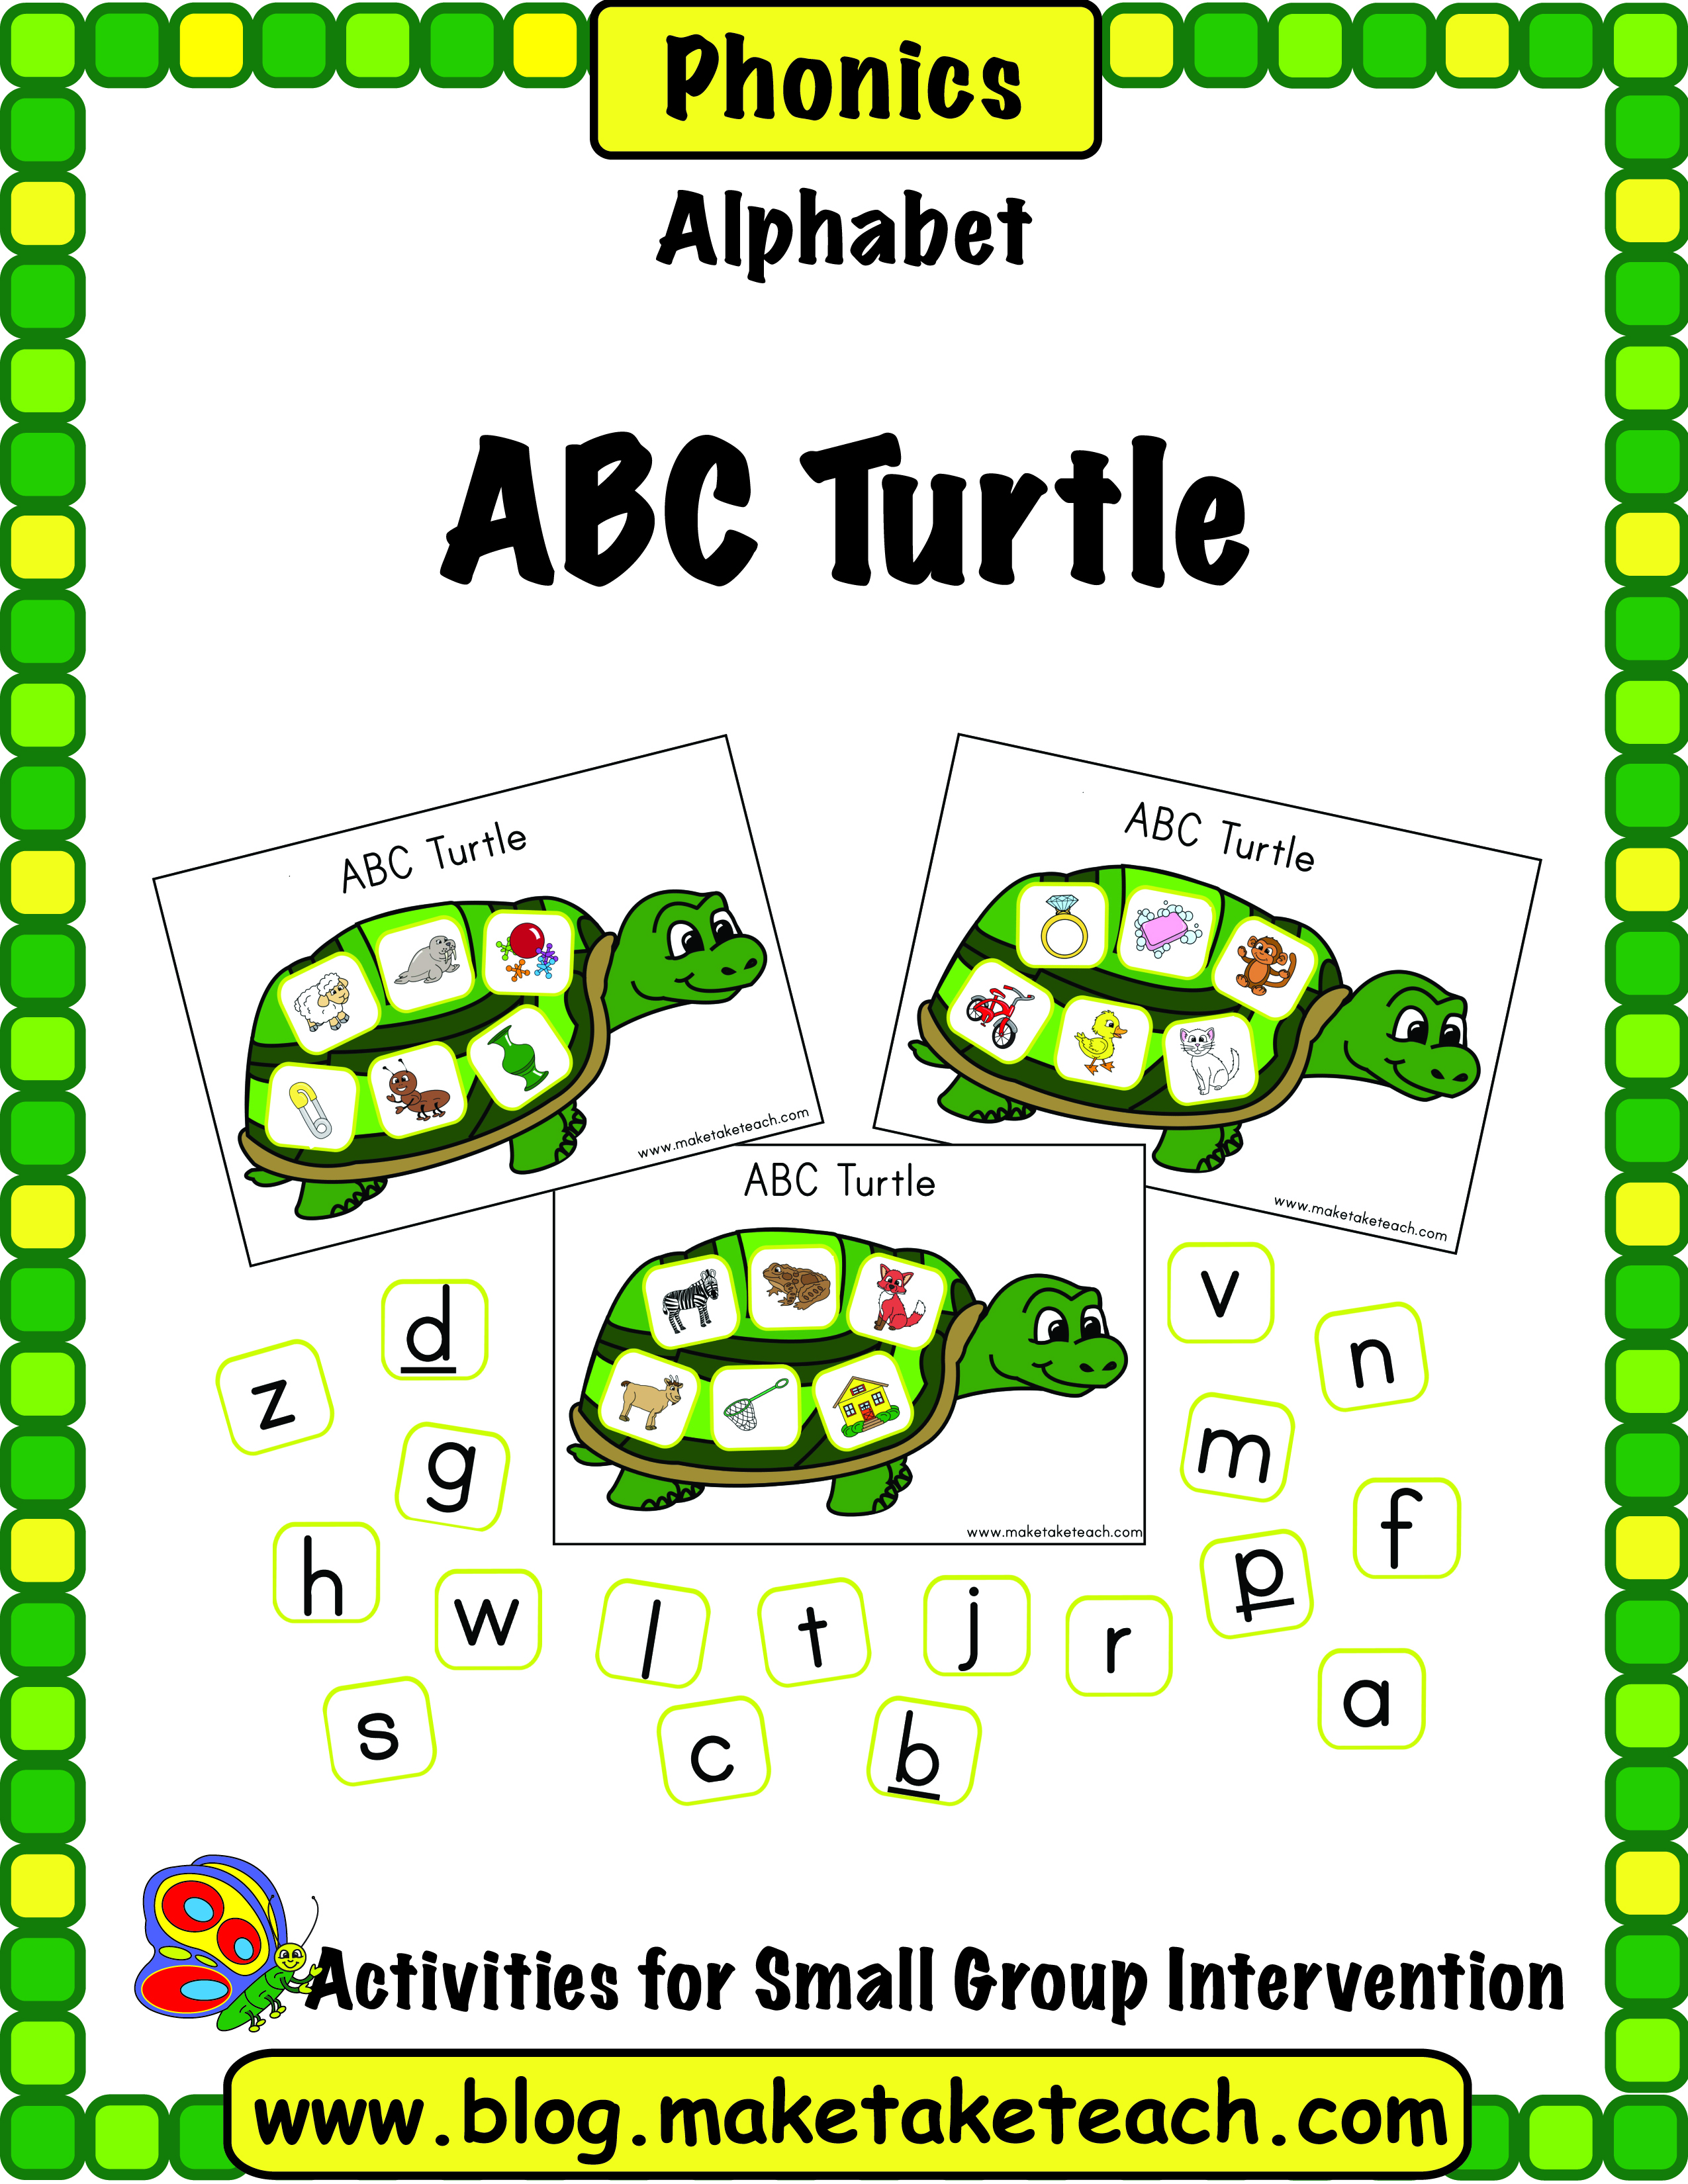 ABC Turtle cover2